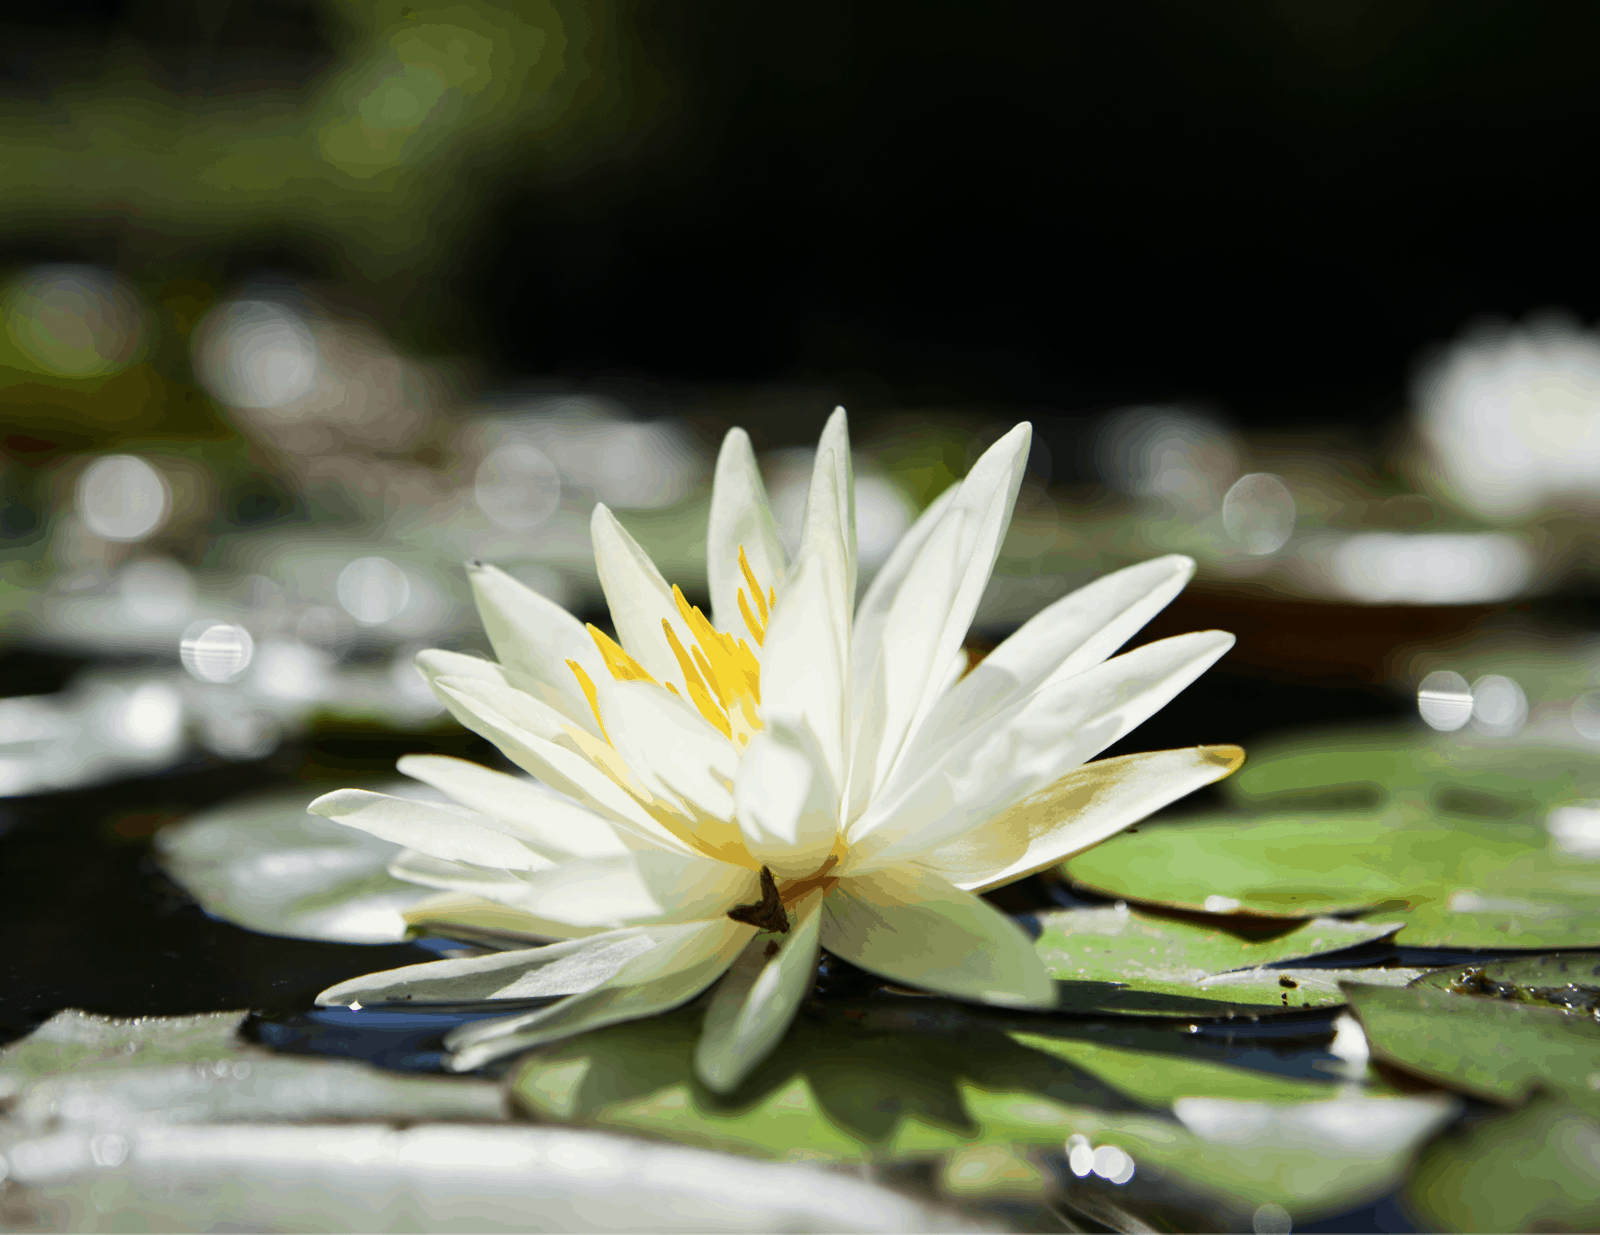 a close up photo of a white water lily bathed in light.